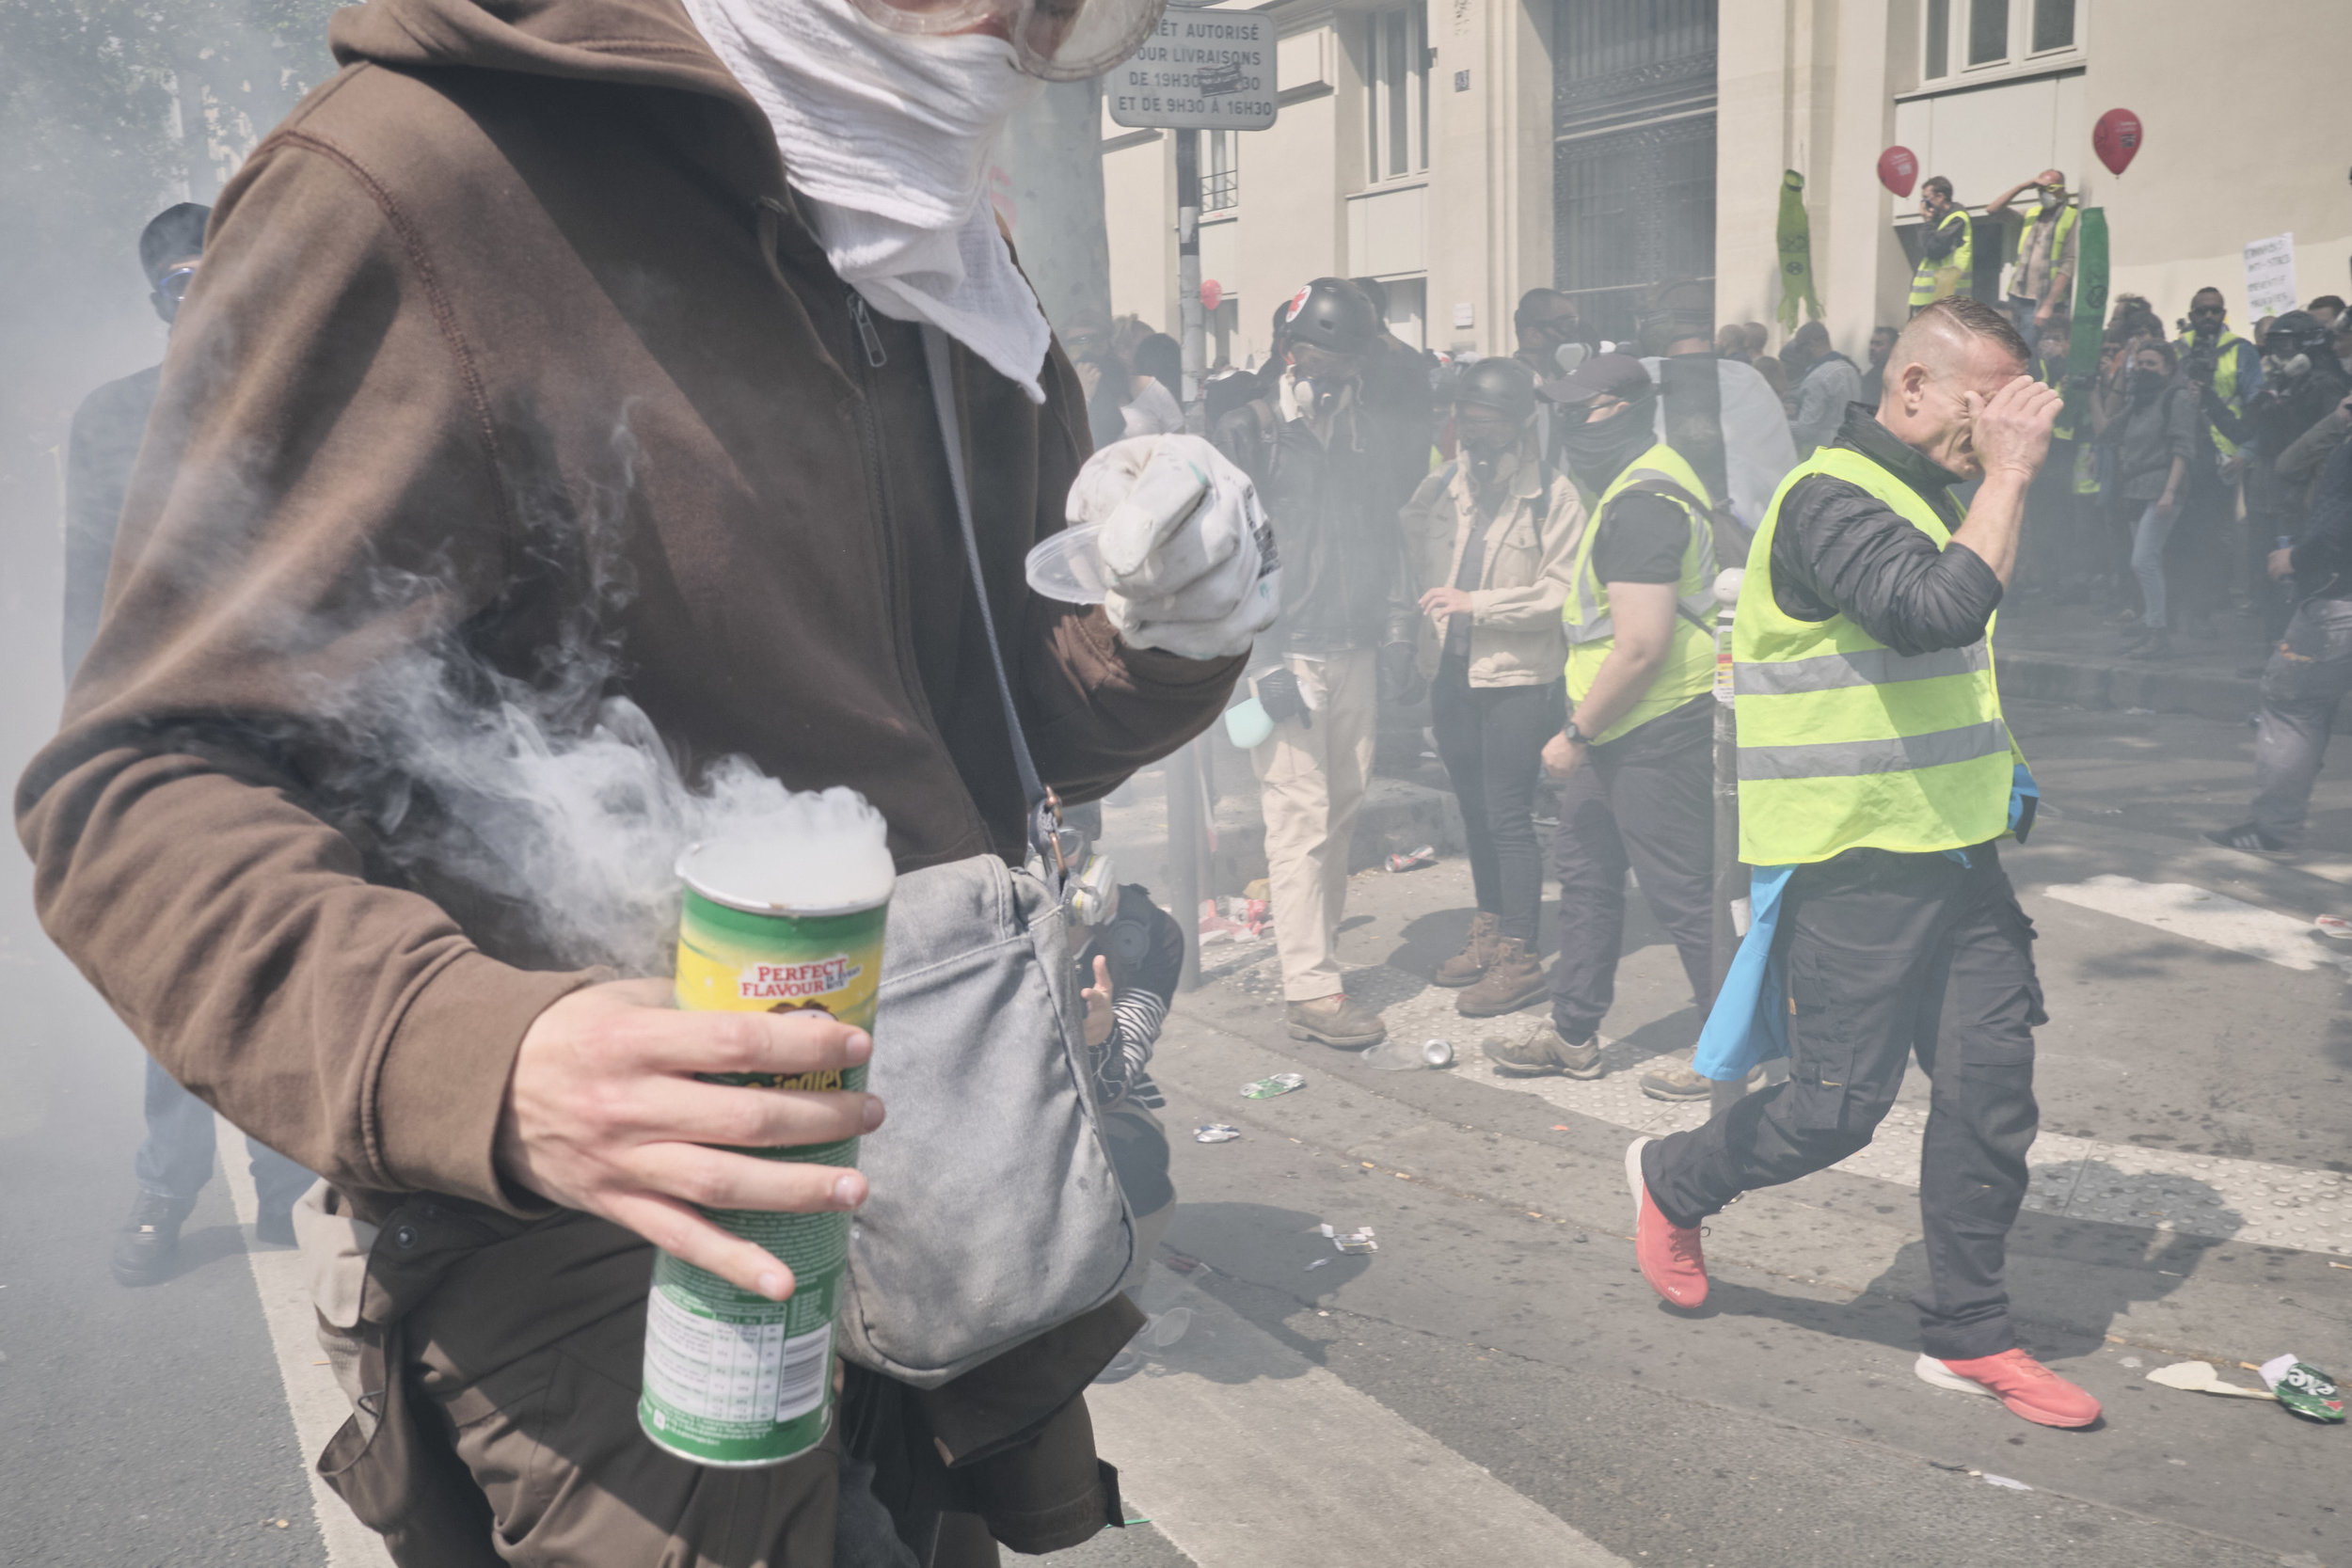 """Protest participant collecting tear gas grenades and storing them in a """"Pringles"""" container during the police attempt to control the crowd at Boulevard du Montparnasse."""